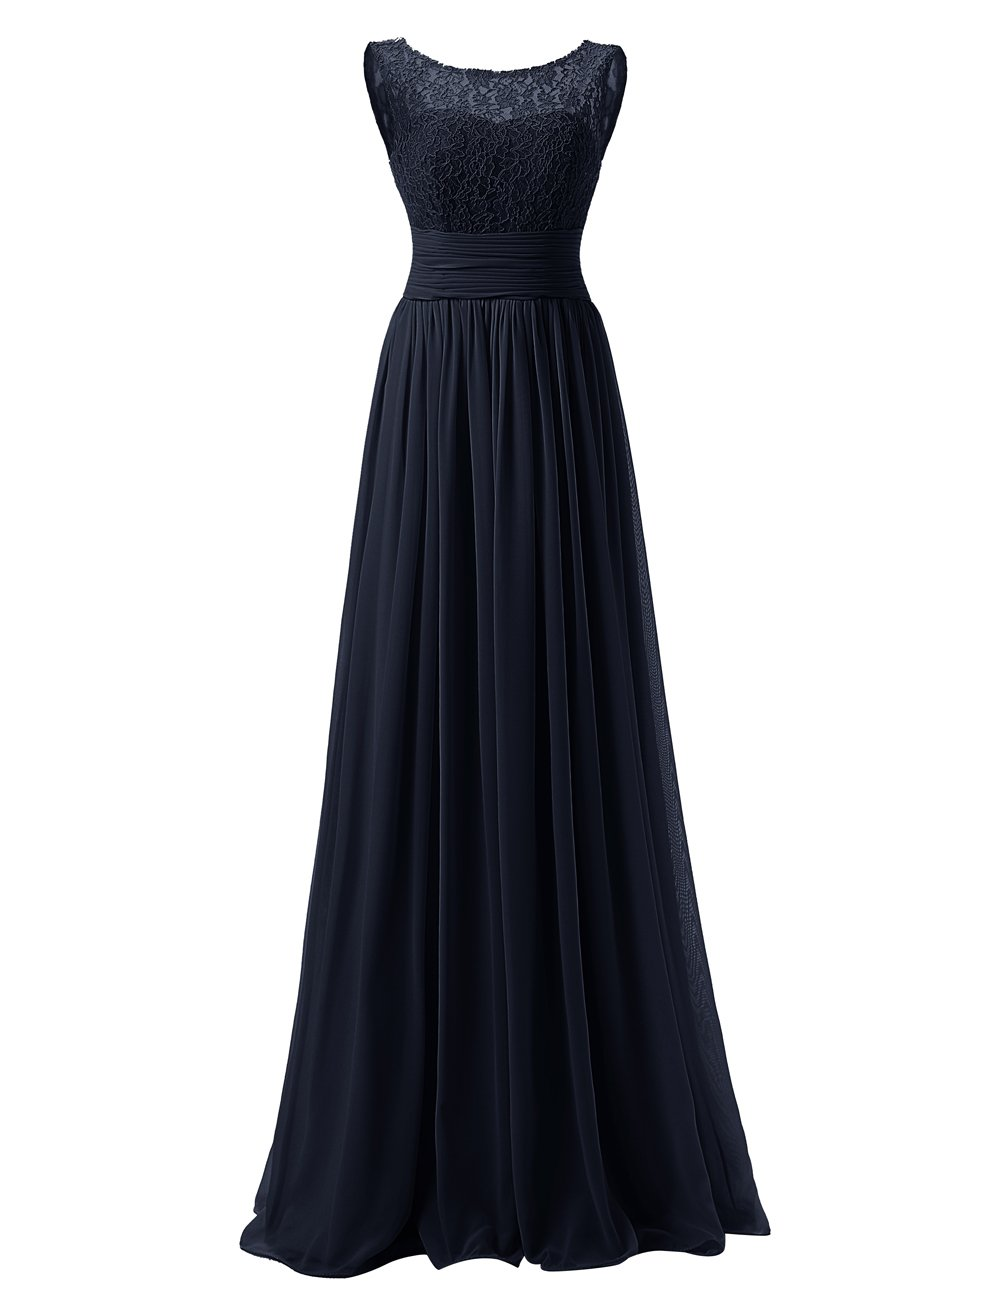 DRESSTELLS Long Prom Dress Scoop Bridesmaid Dress Lace Chiffon Evening Gown